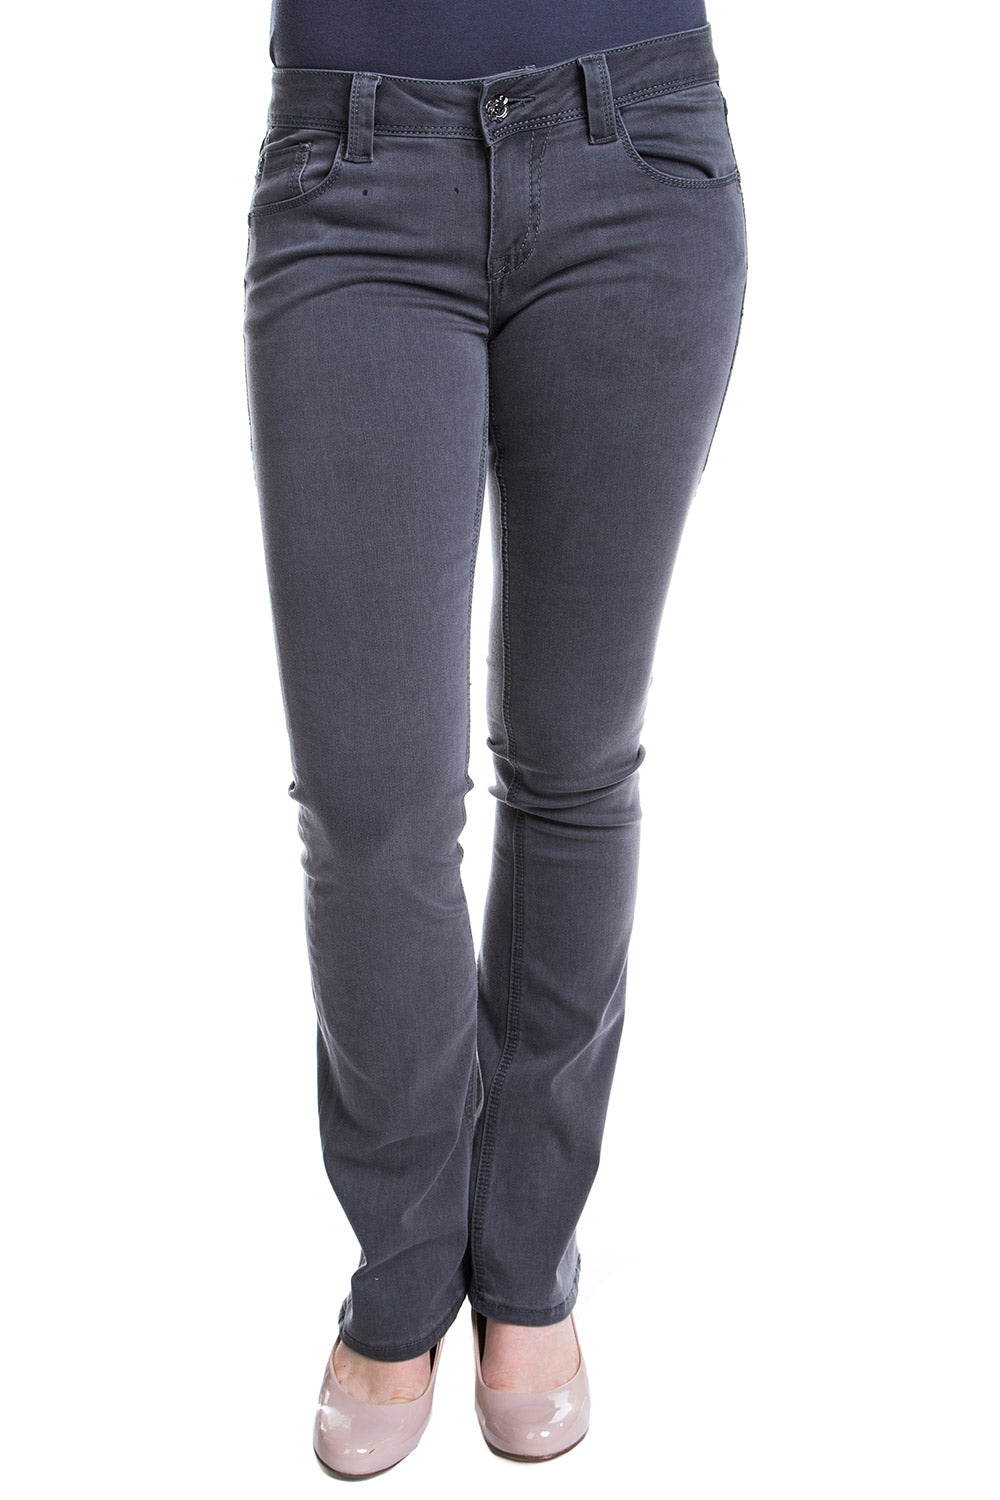 Type 2 Comfy Stretch Pant